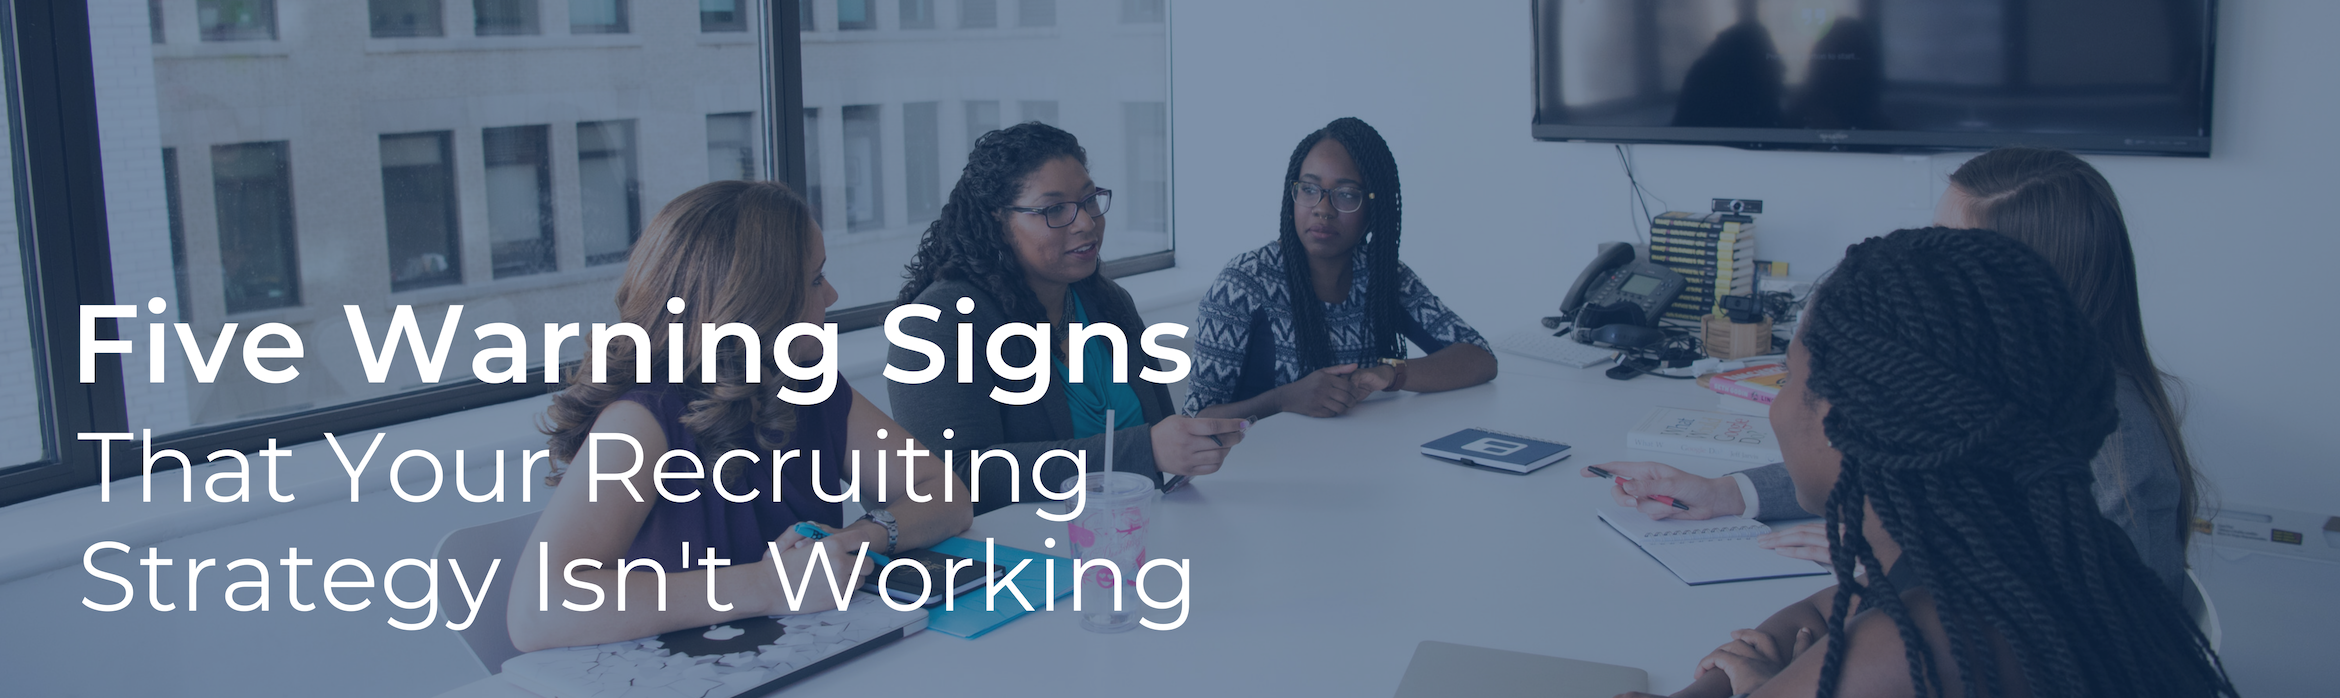 Five Warning Signs That Your Recruiting Strategy Isn't Working